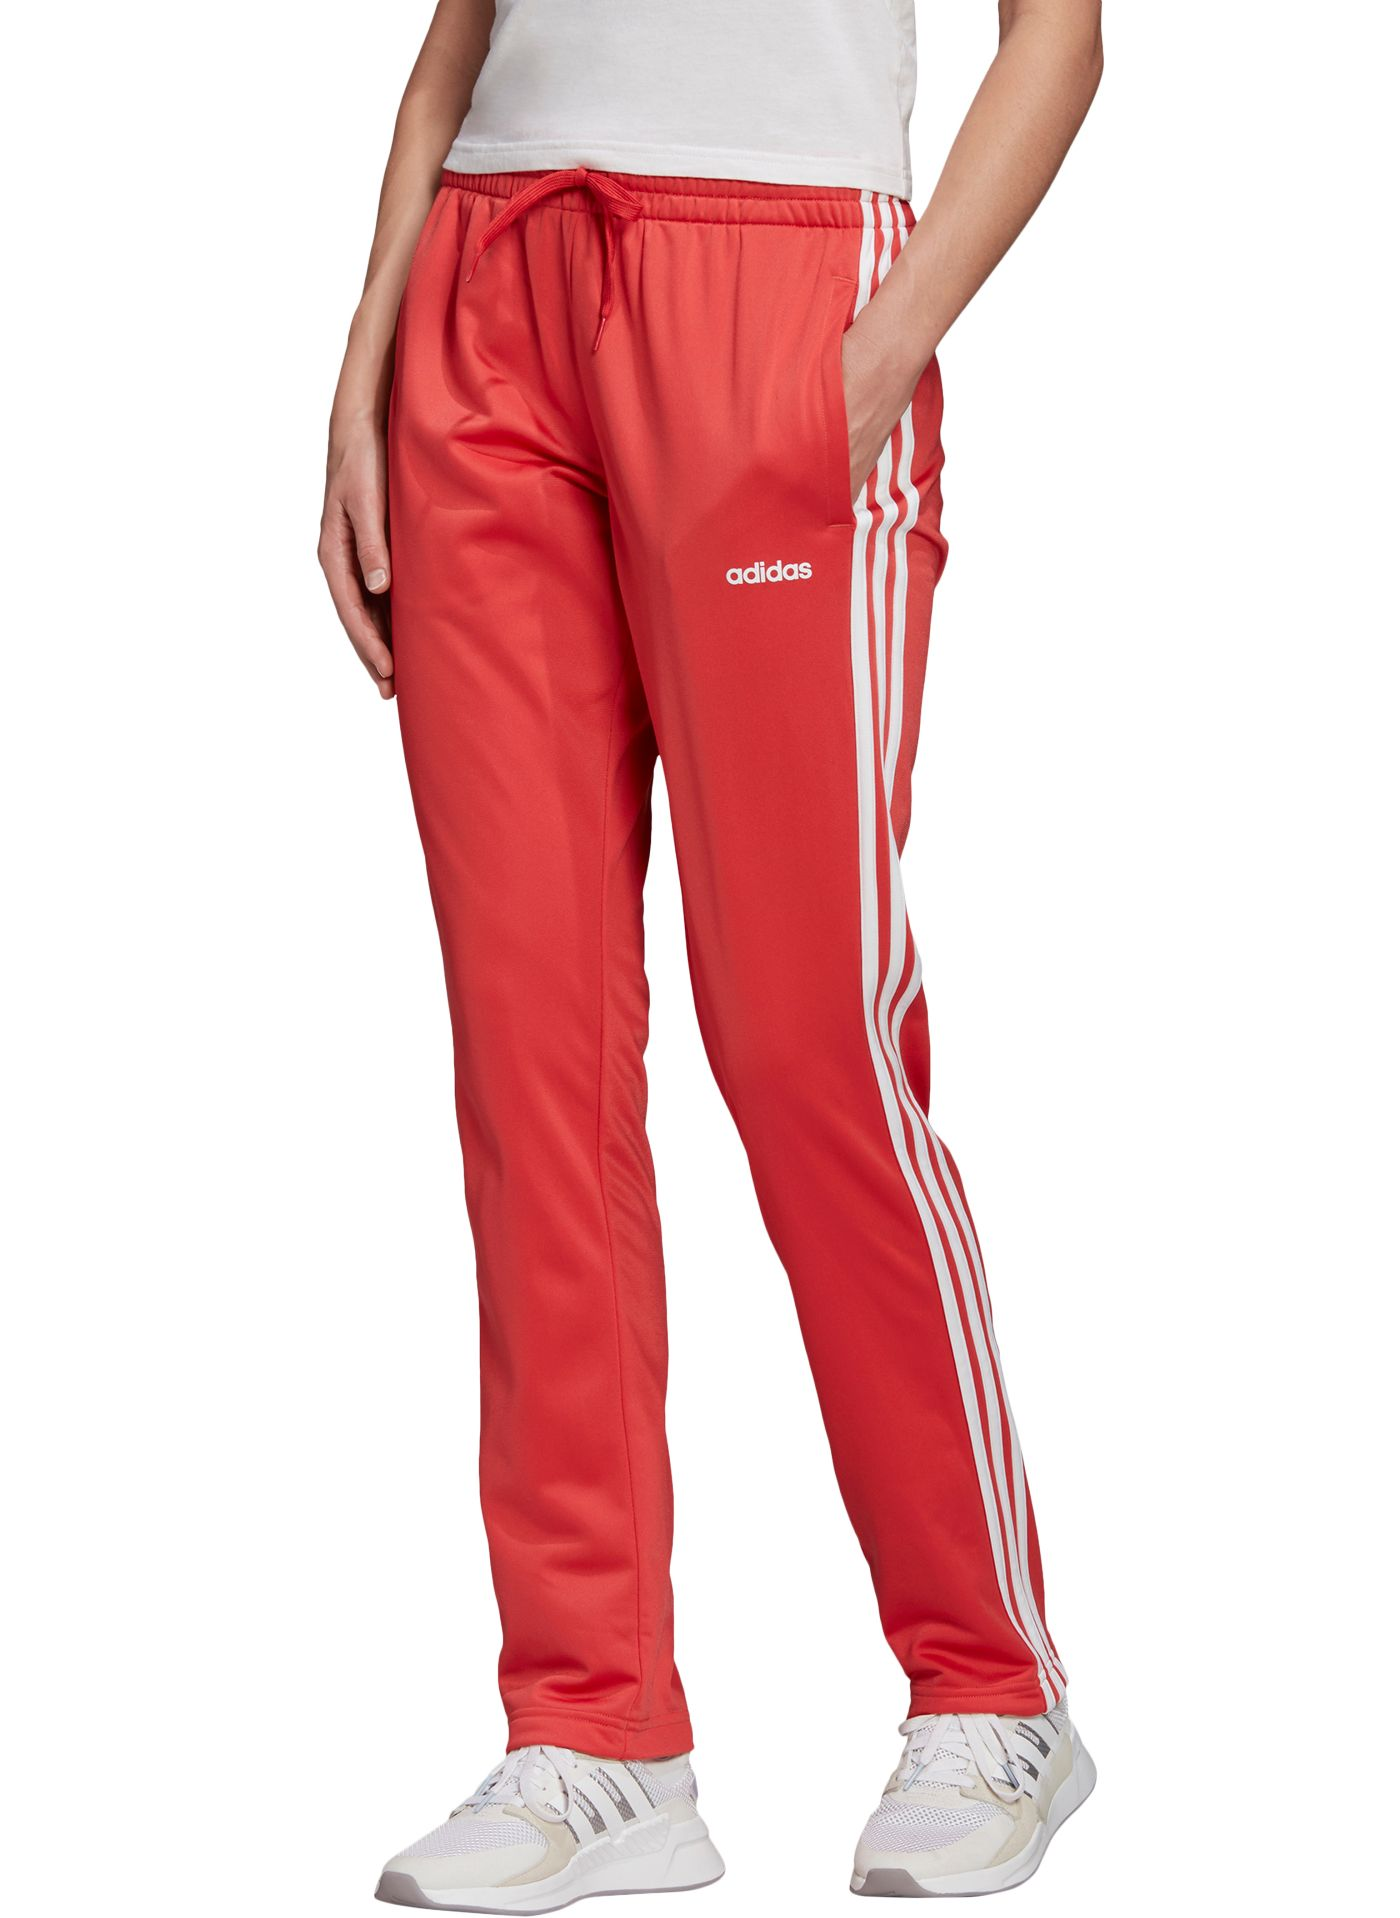 adidas Women's Essentials Tricot Open Hem Pants